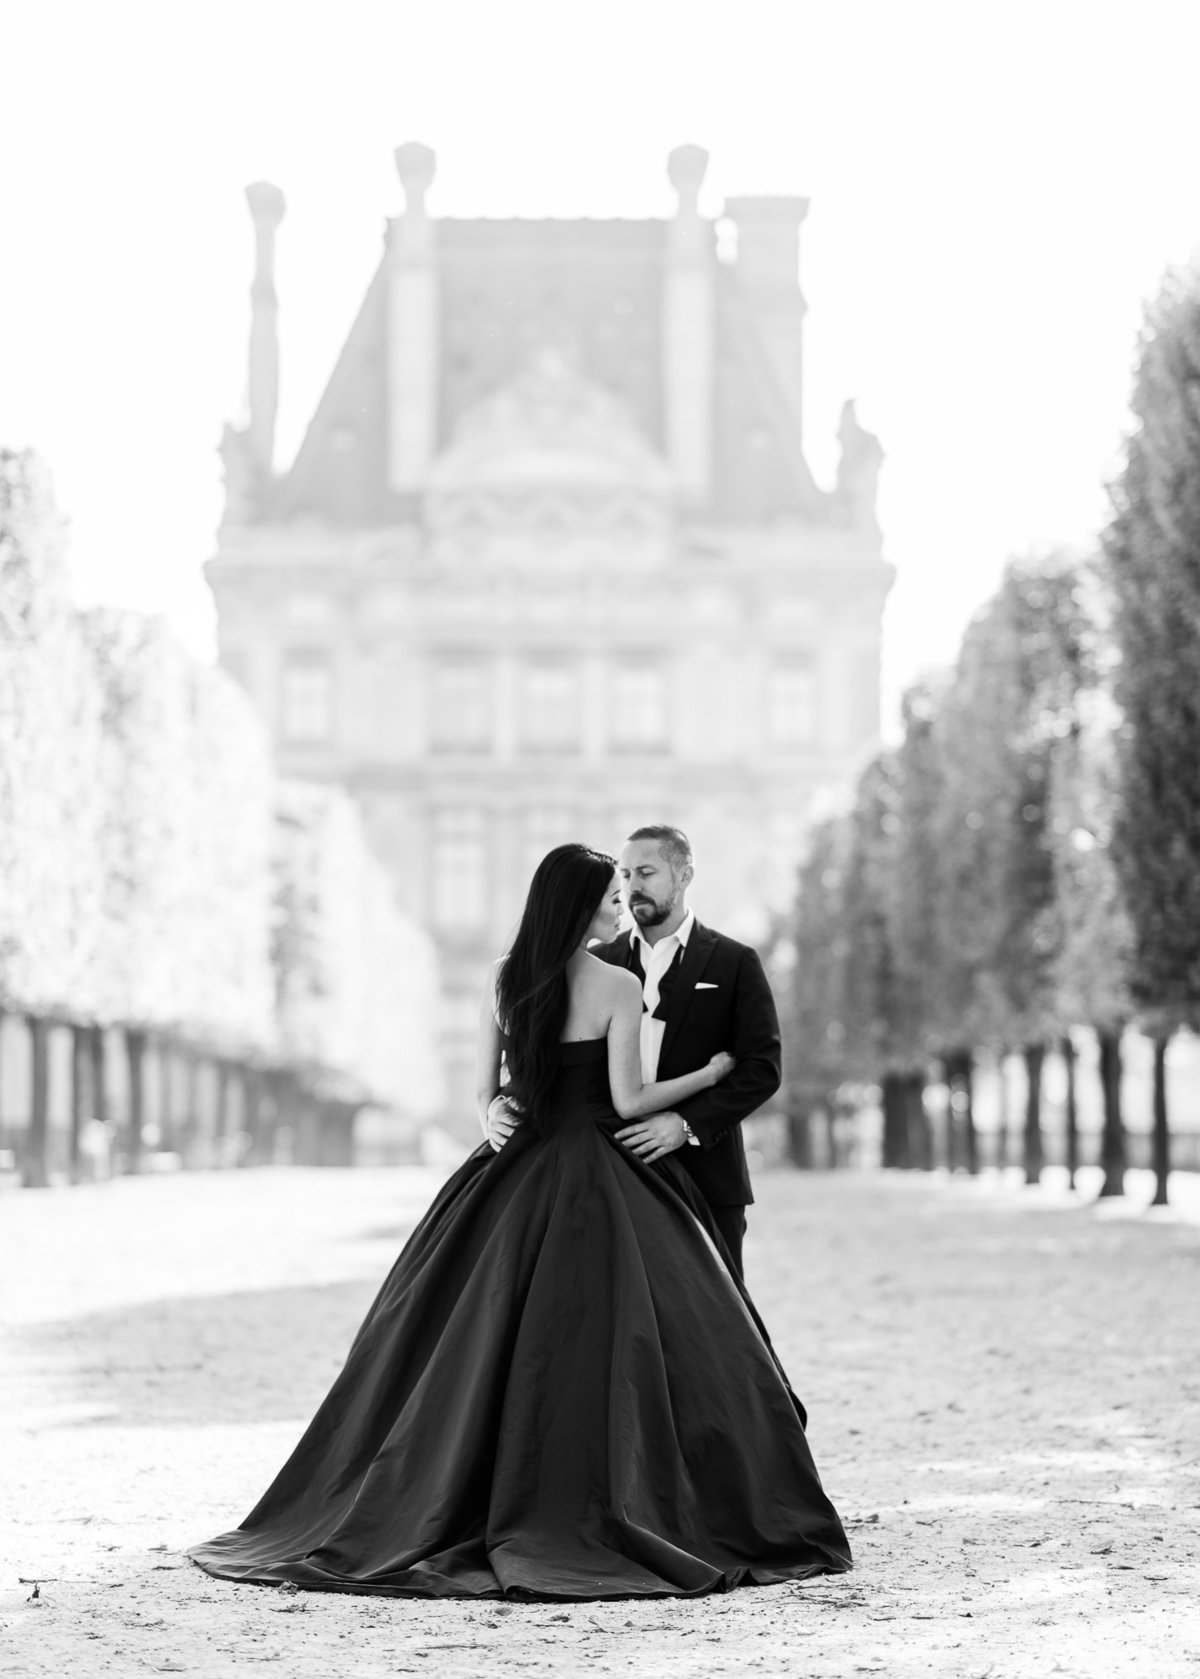 Paris_Wedding_Photographer_207